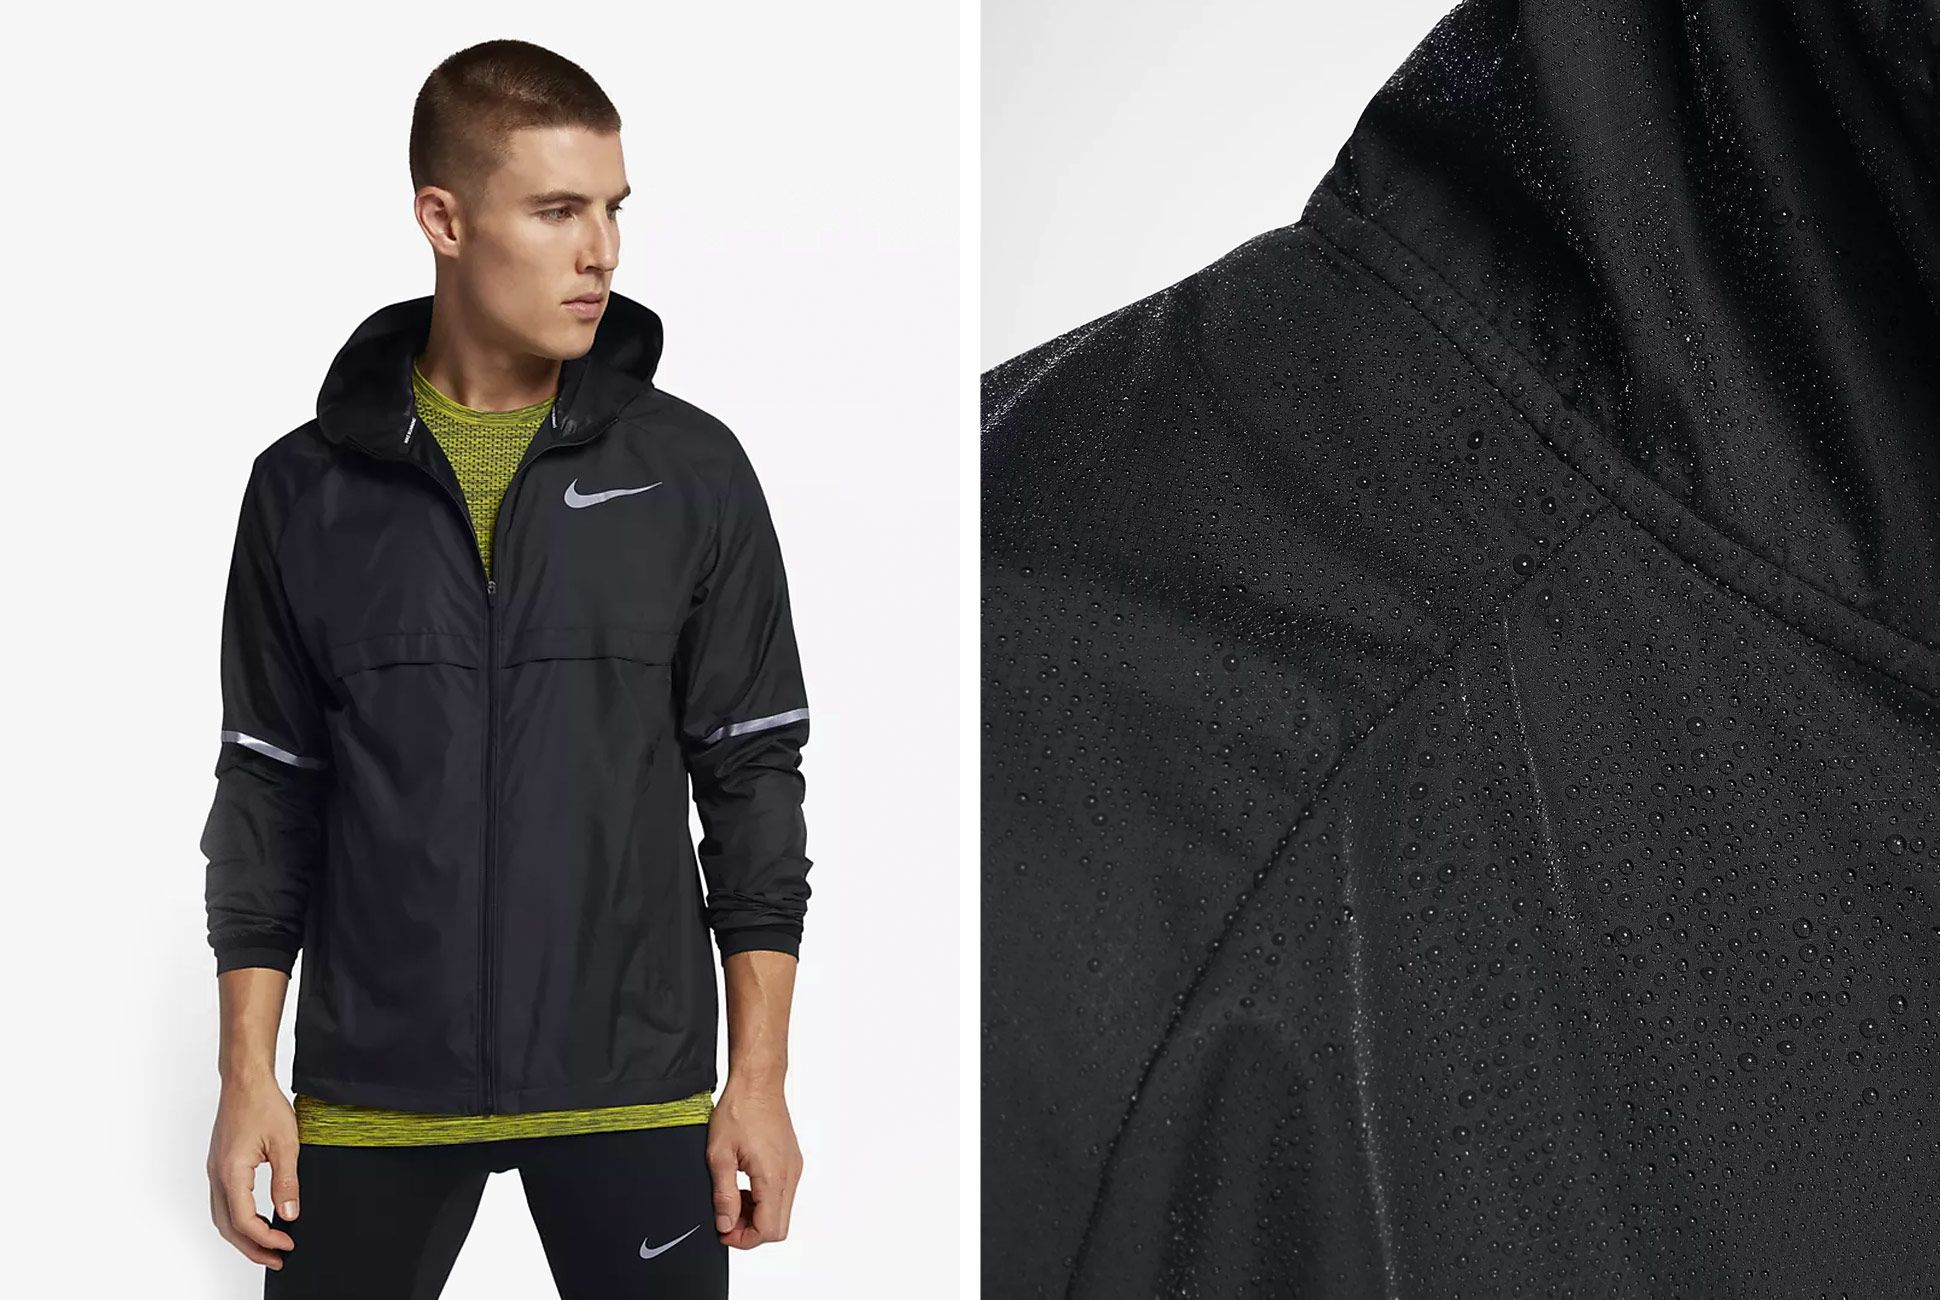 entidad Whitney Terminología  The Best Jackets For Running in the Rain